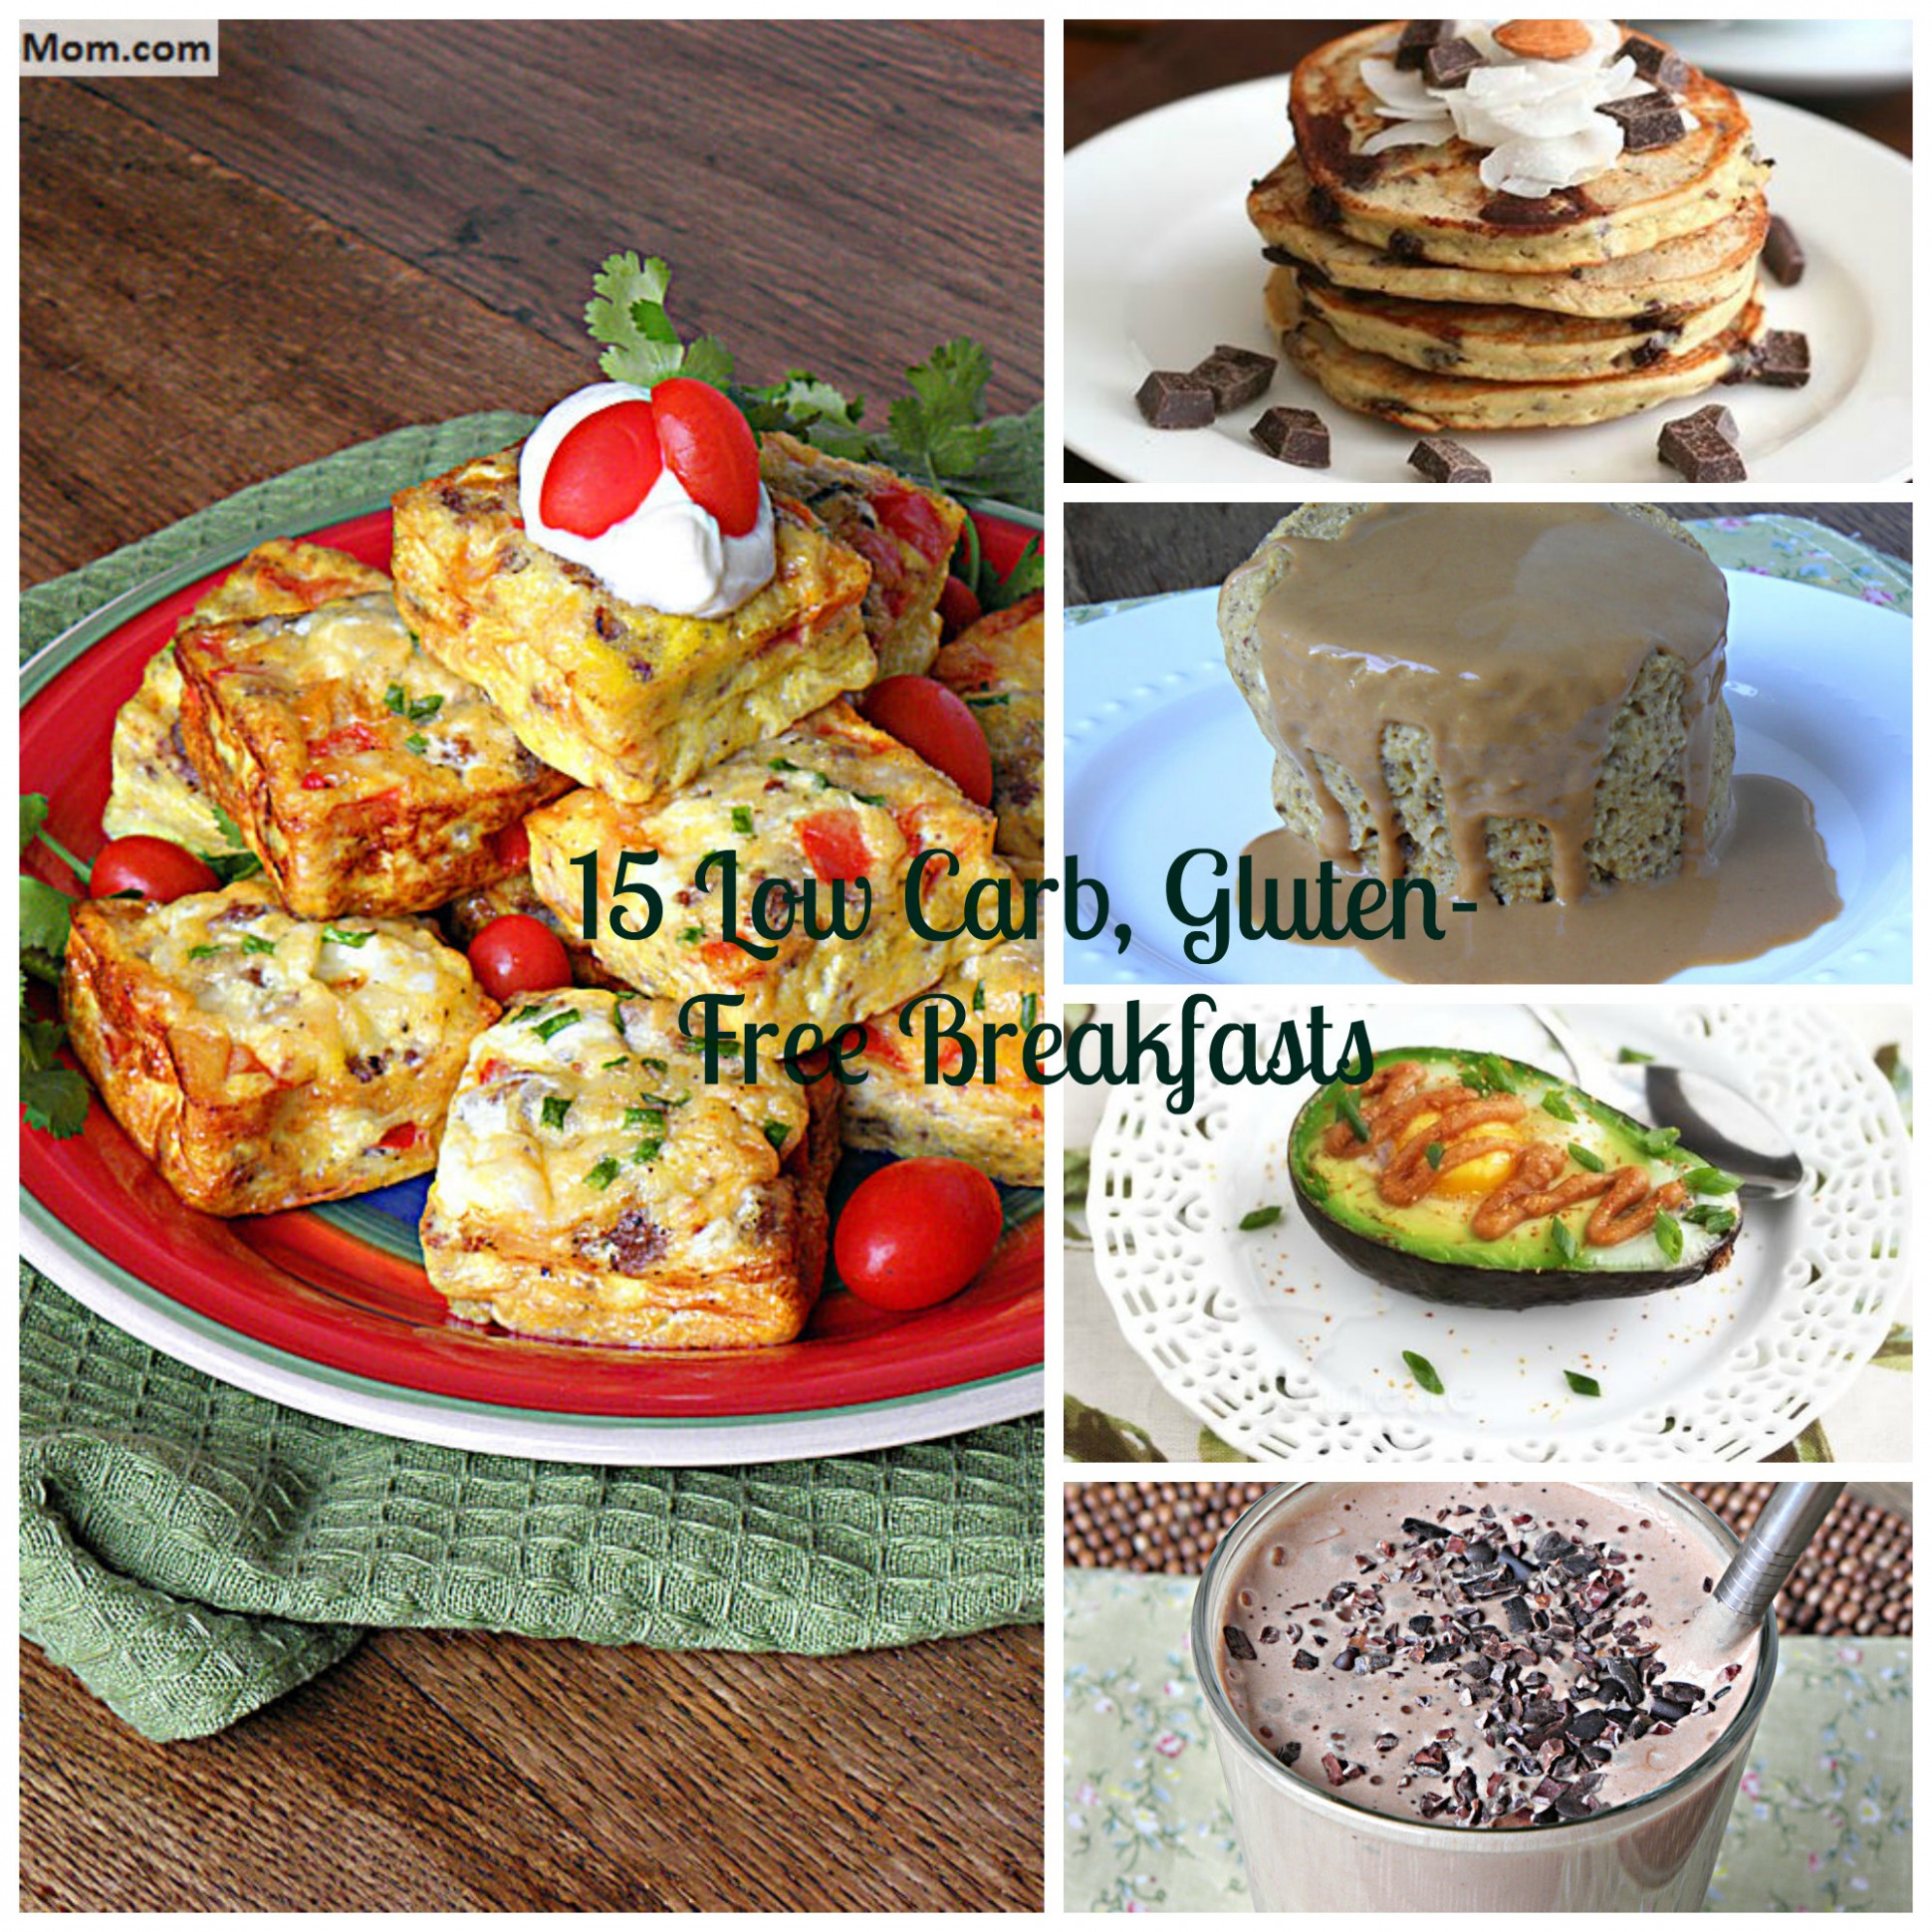 15 Gluten Free, Low Carb & Diabetic Friendly Breakfast Recipes